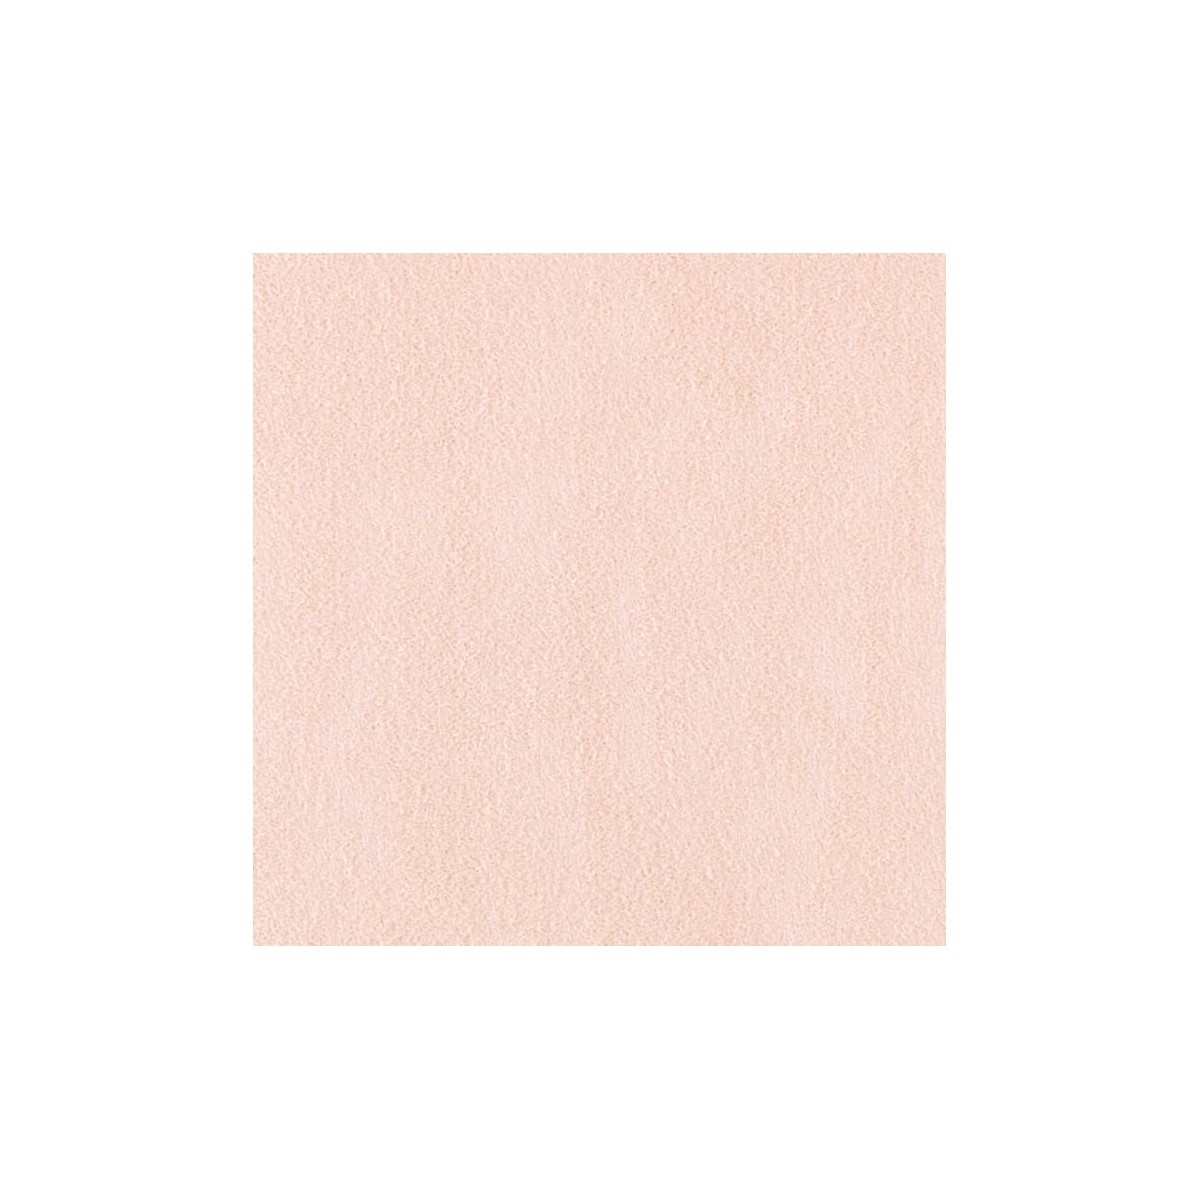 Ultrasuede GLAZE 225 x 230 mm 1pz